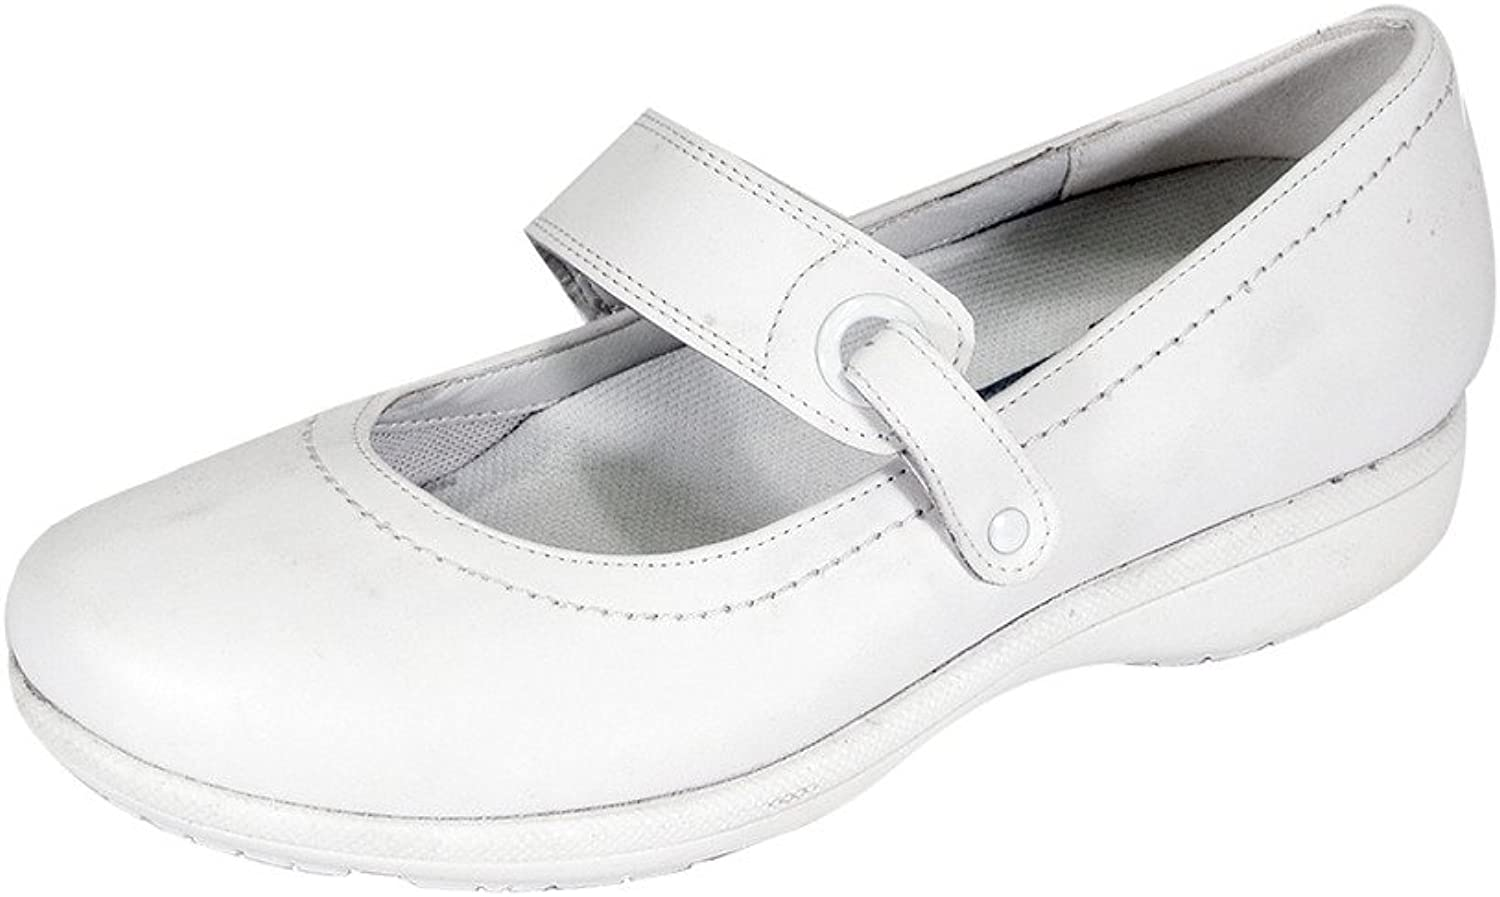 24 Hour Comfort Kristi Women Adjustable Wide Width Classic Comfort Mary Jane shoes